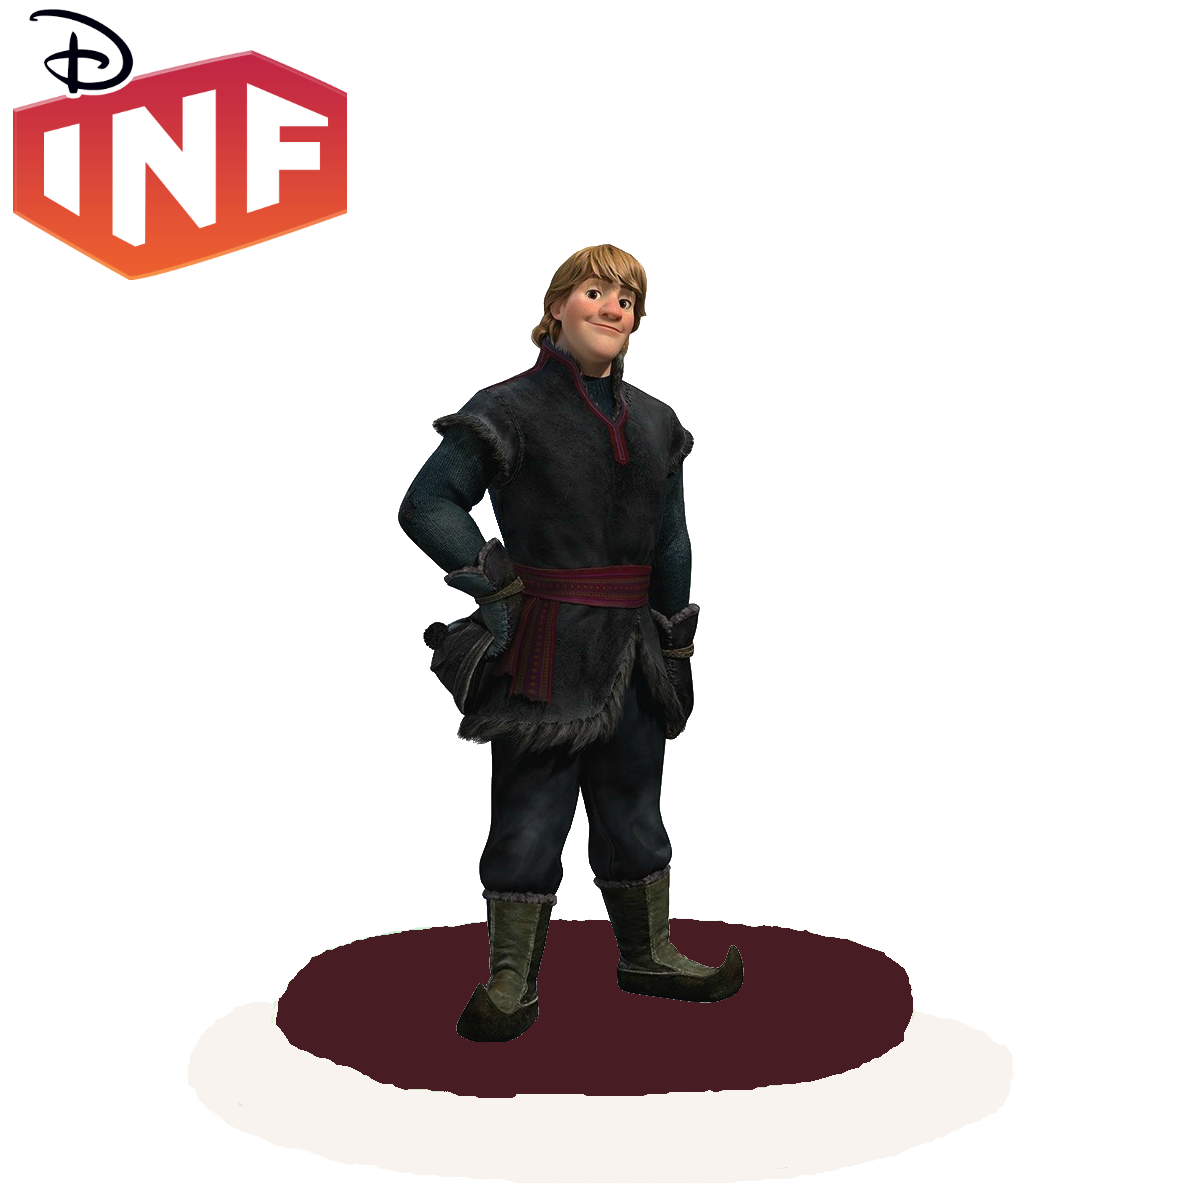 Disney infinity alice png. Image kristoff fan fiction